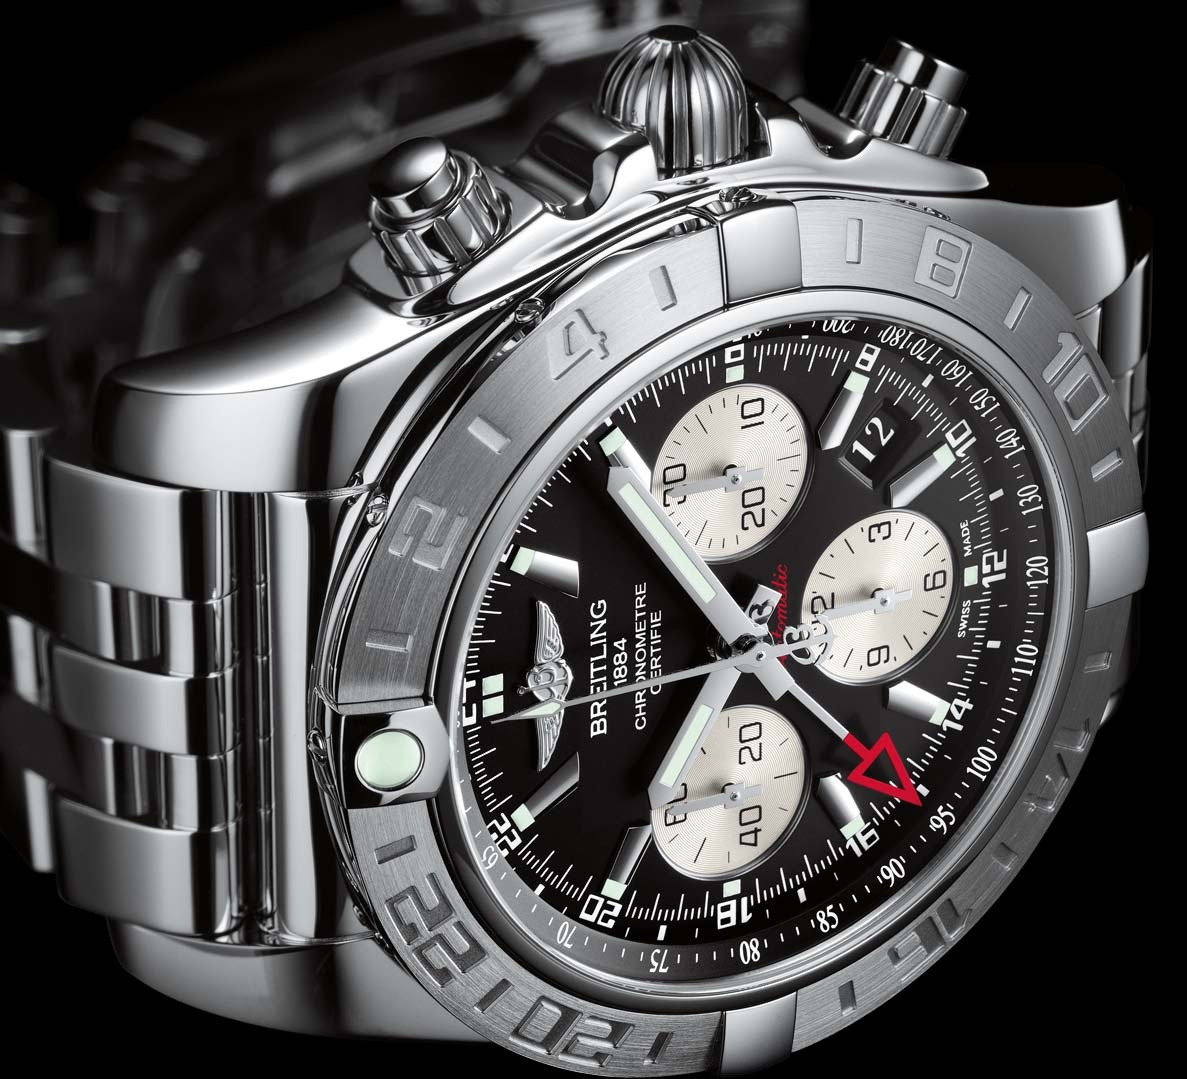 Attracting Attention of Others with Wearing a Breitling Chronomat Replica Watches